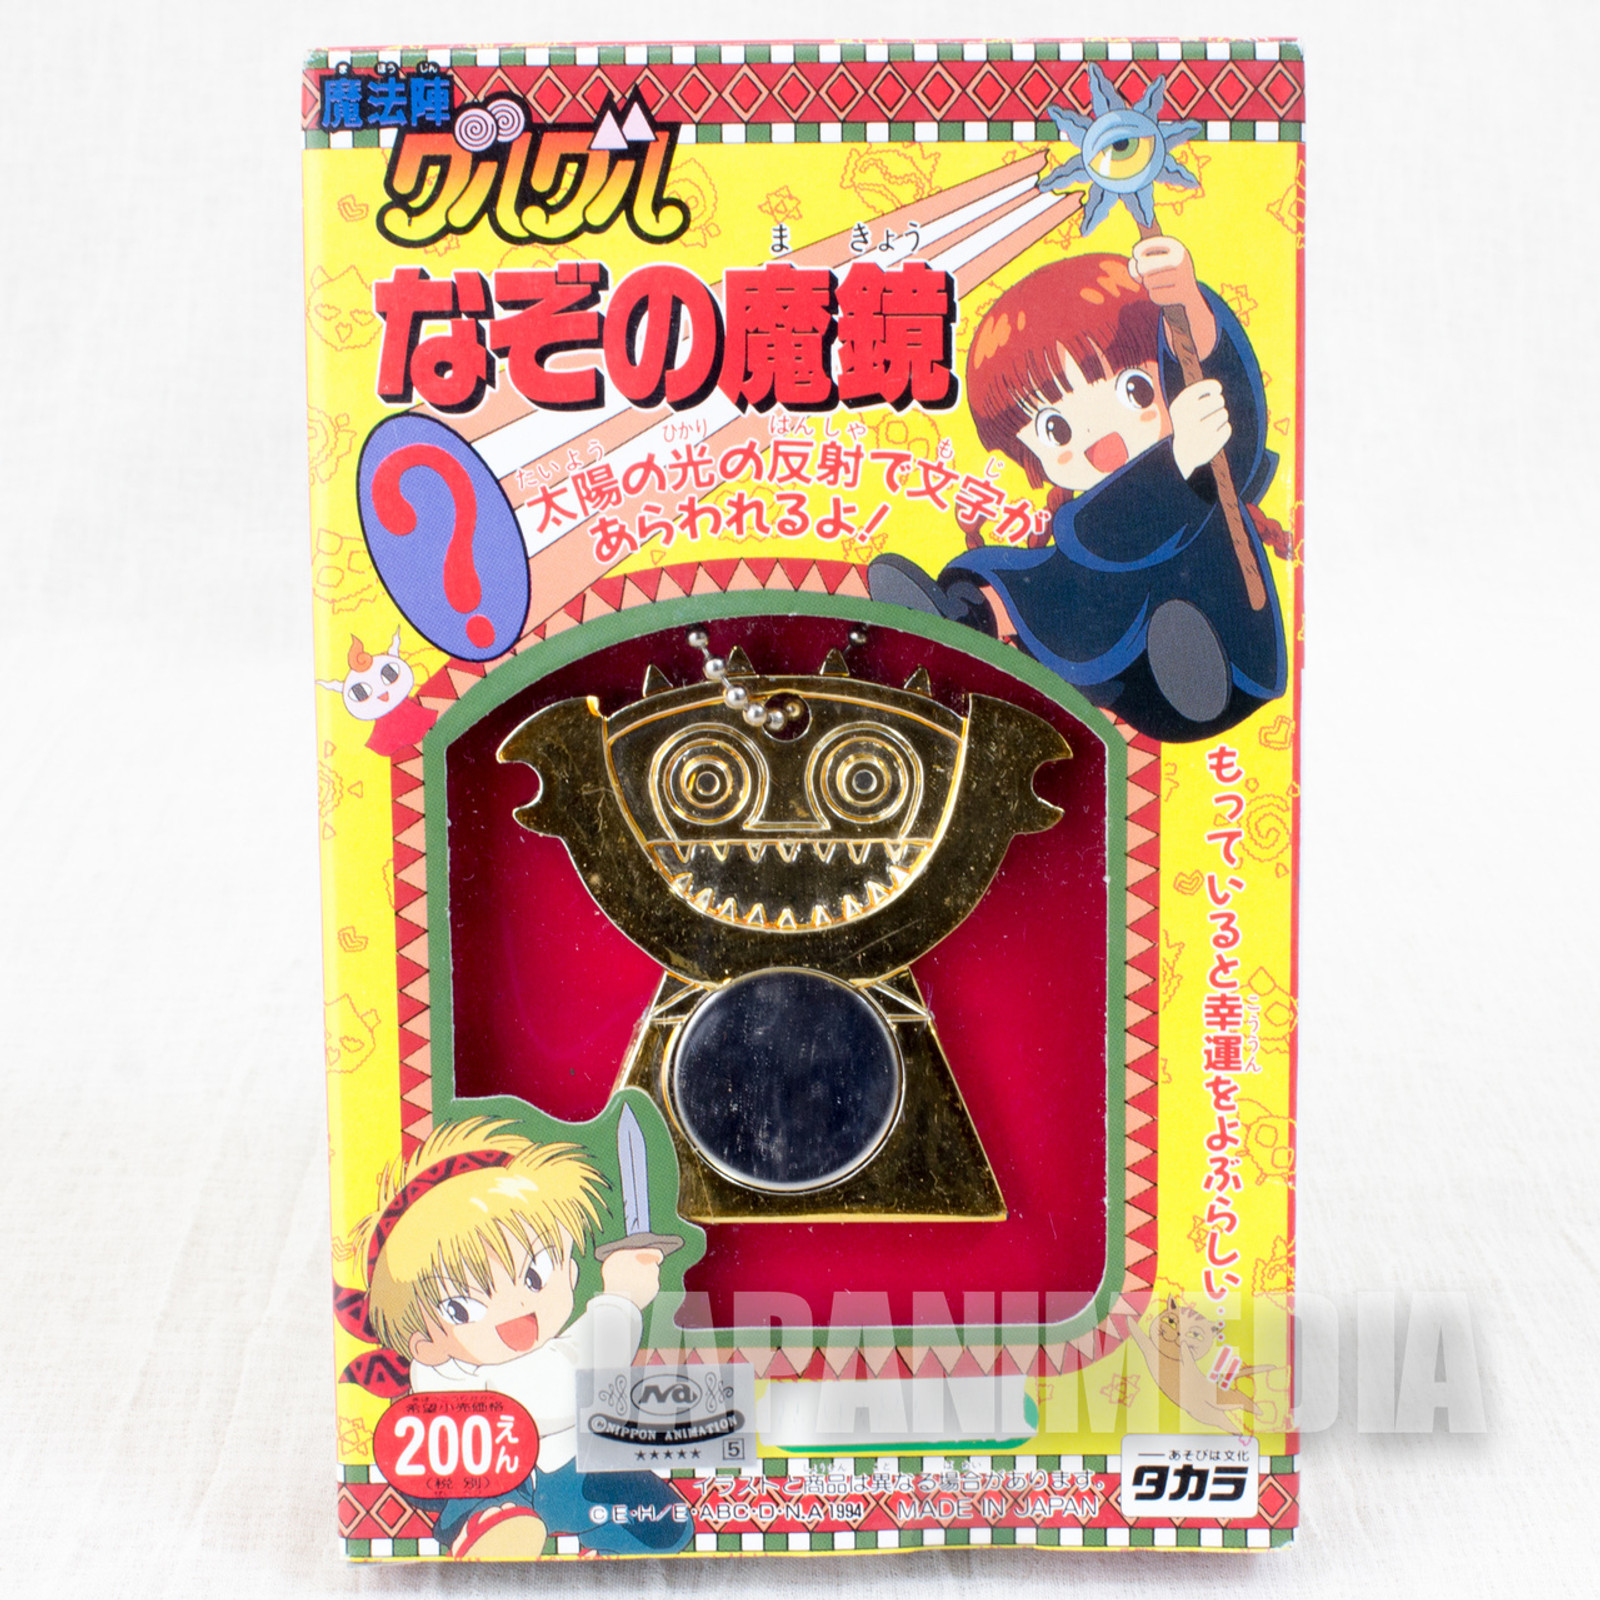 Magical Circle Guru Guru Guruguru-sama Magical Mirror Ball keychain JAPAN ANIME MANGA